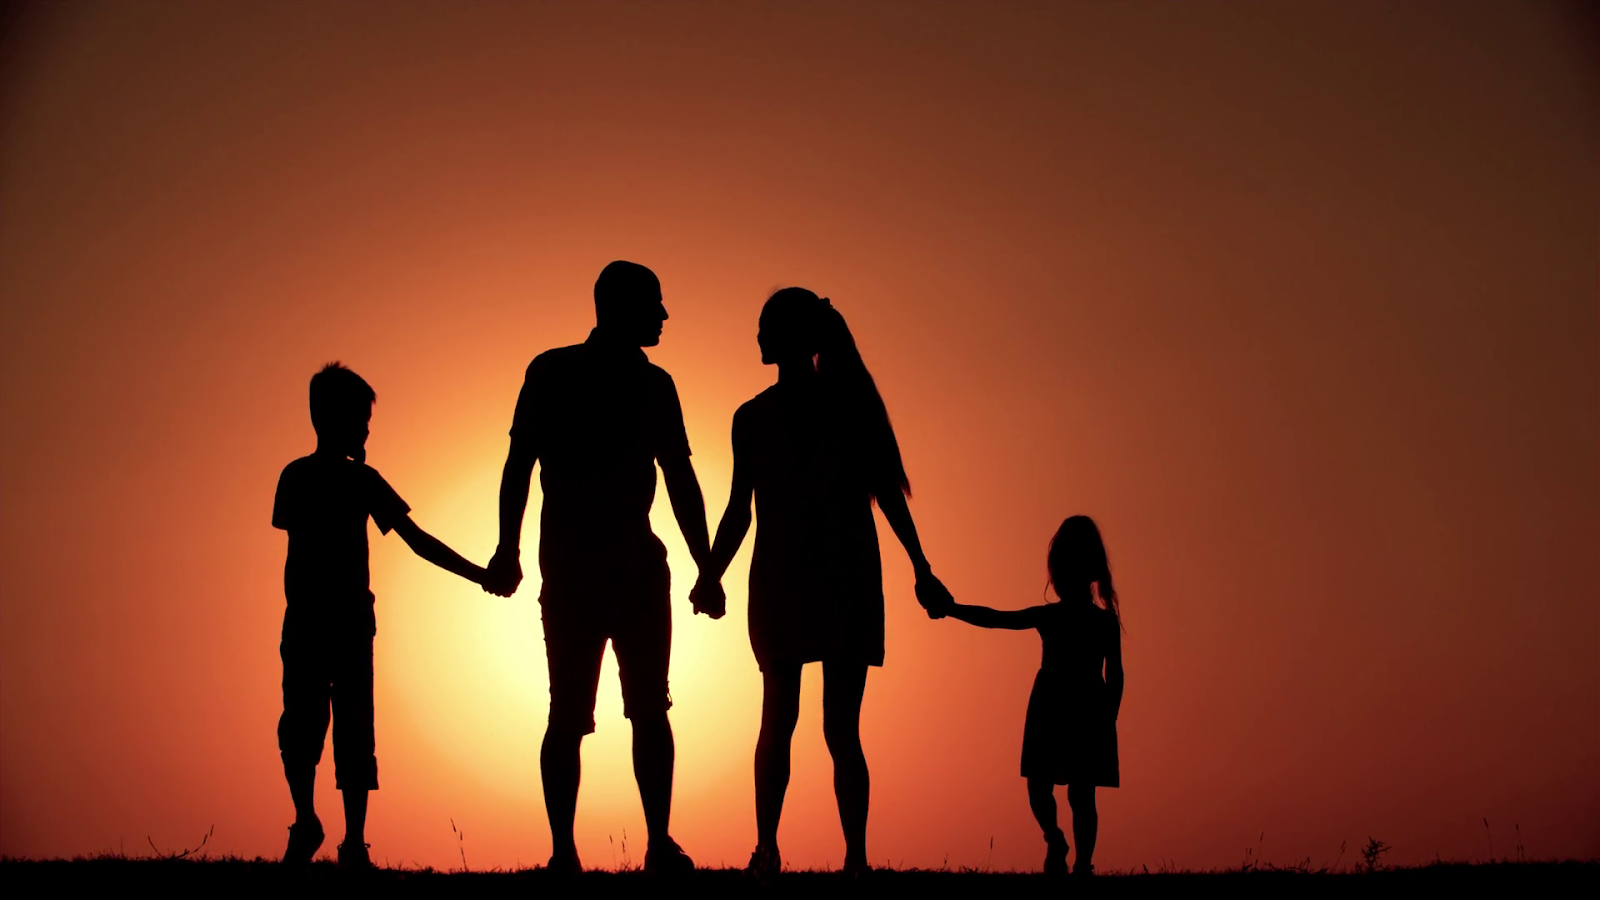 COMPARTIENDO - SHARING: THE FAMILY: AN AUTHENTIC VALUE TO ...